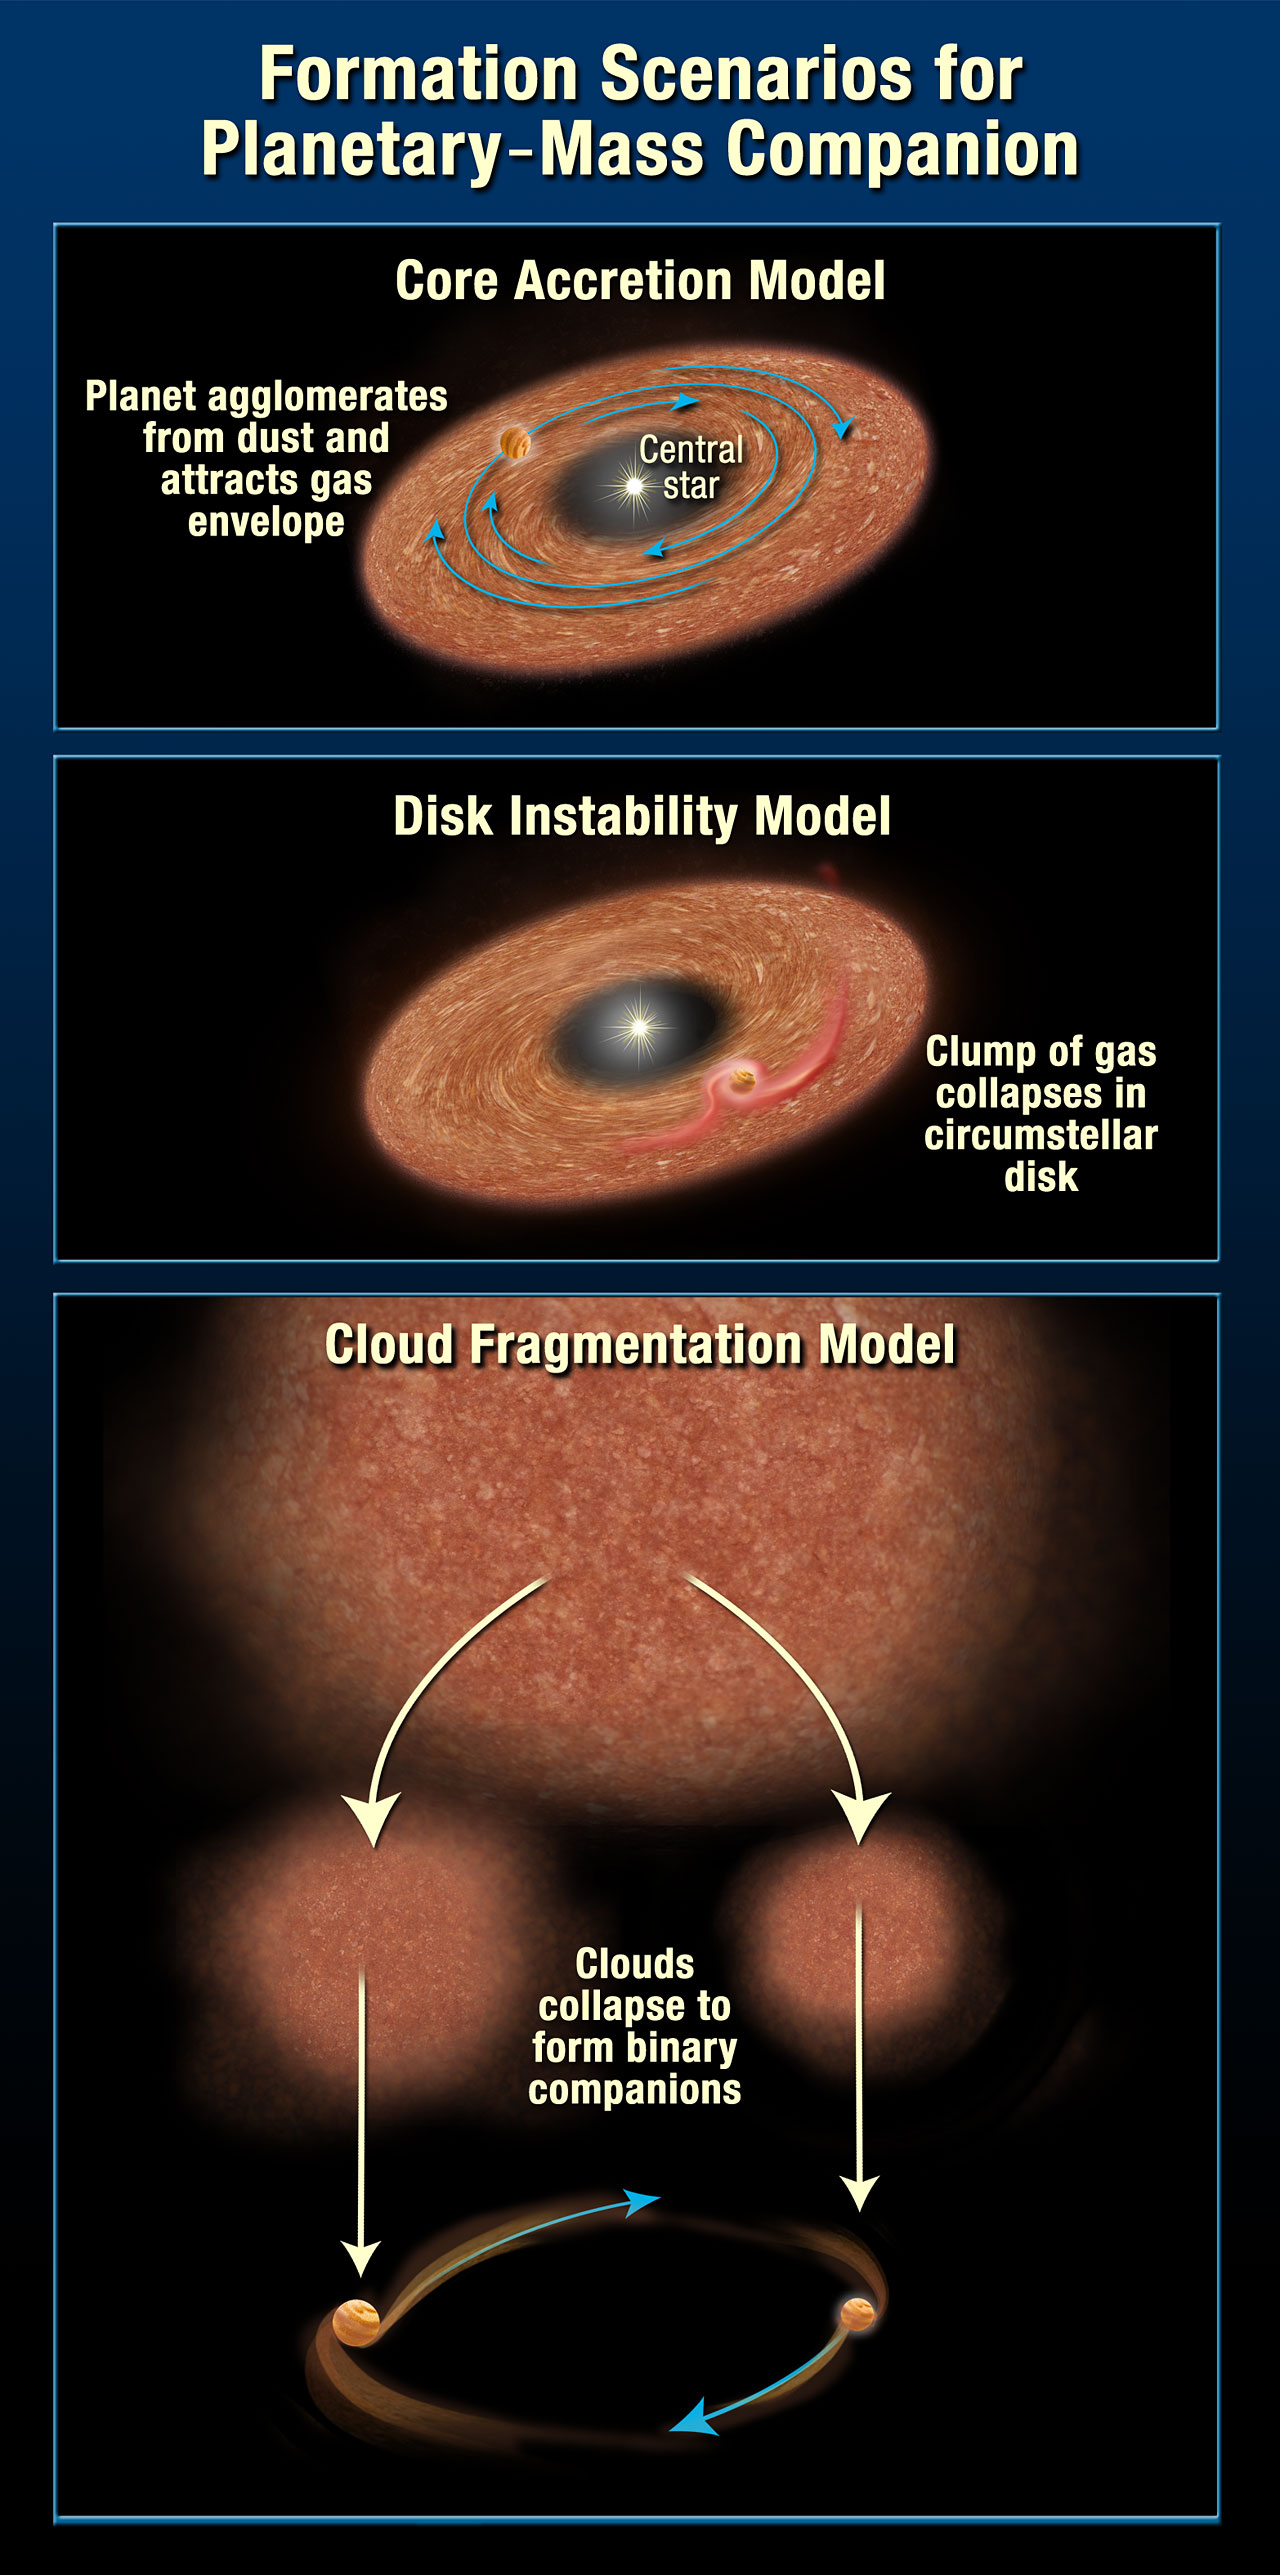 Formation scenarios for planetary-mass companion (artist's impression)